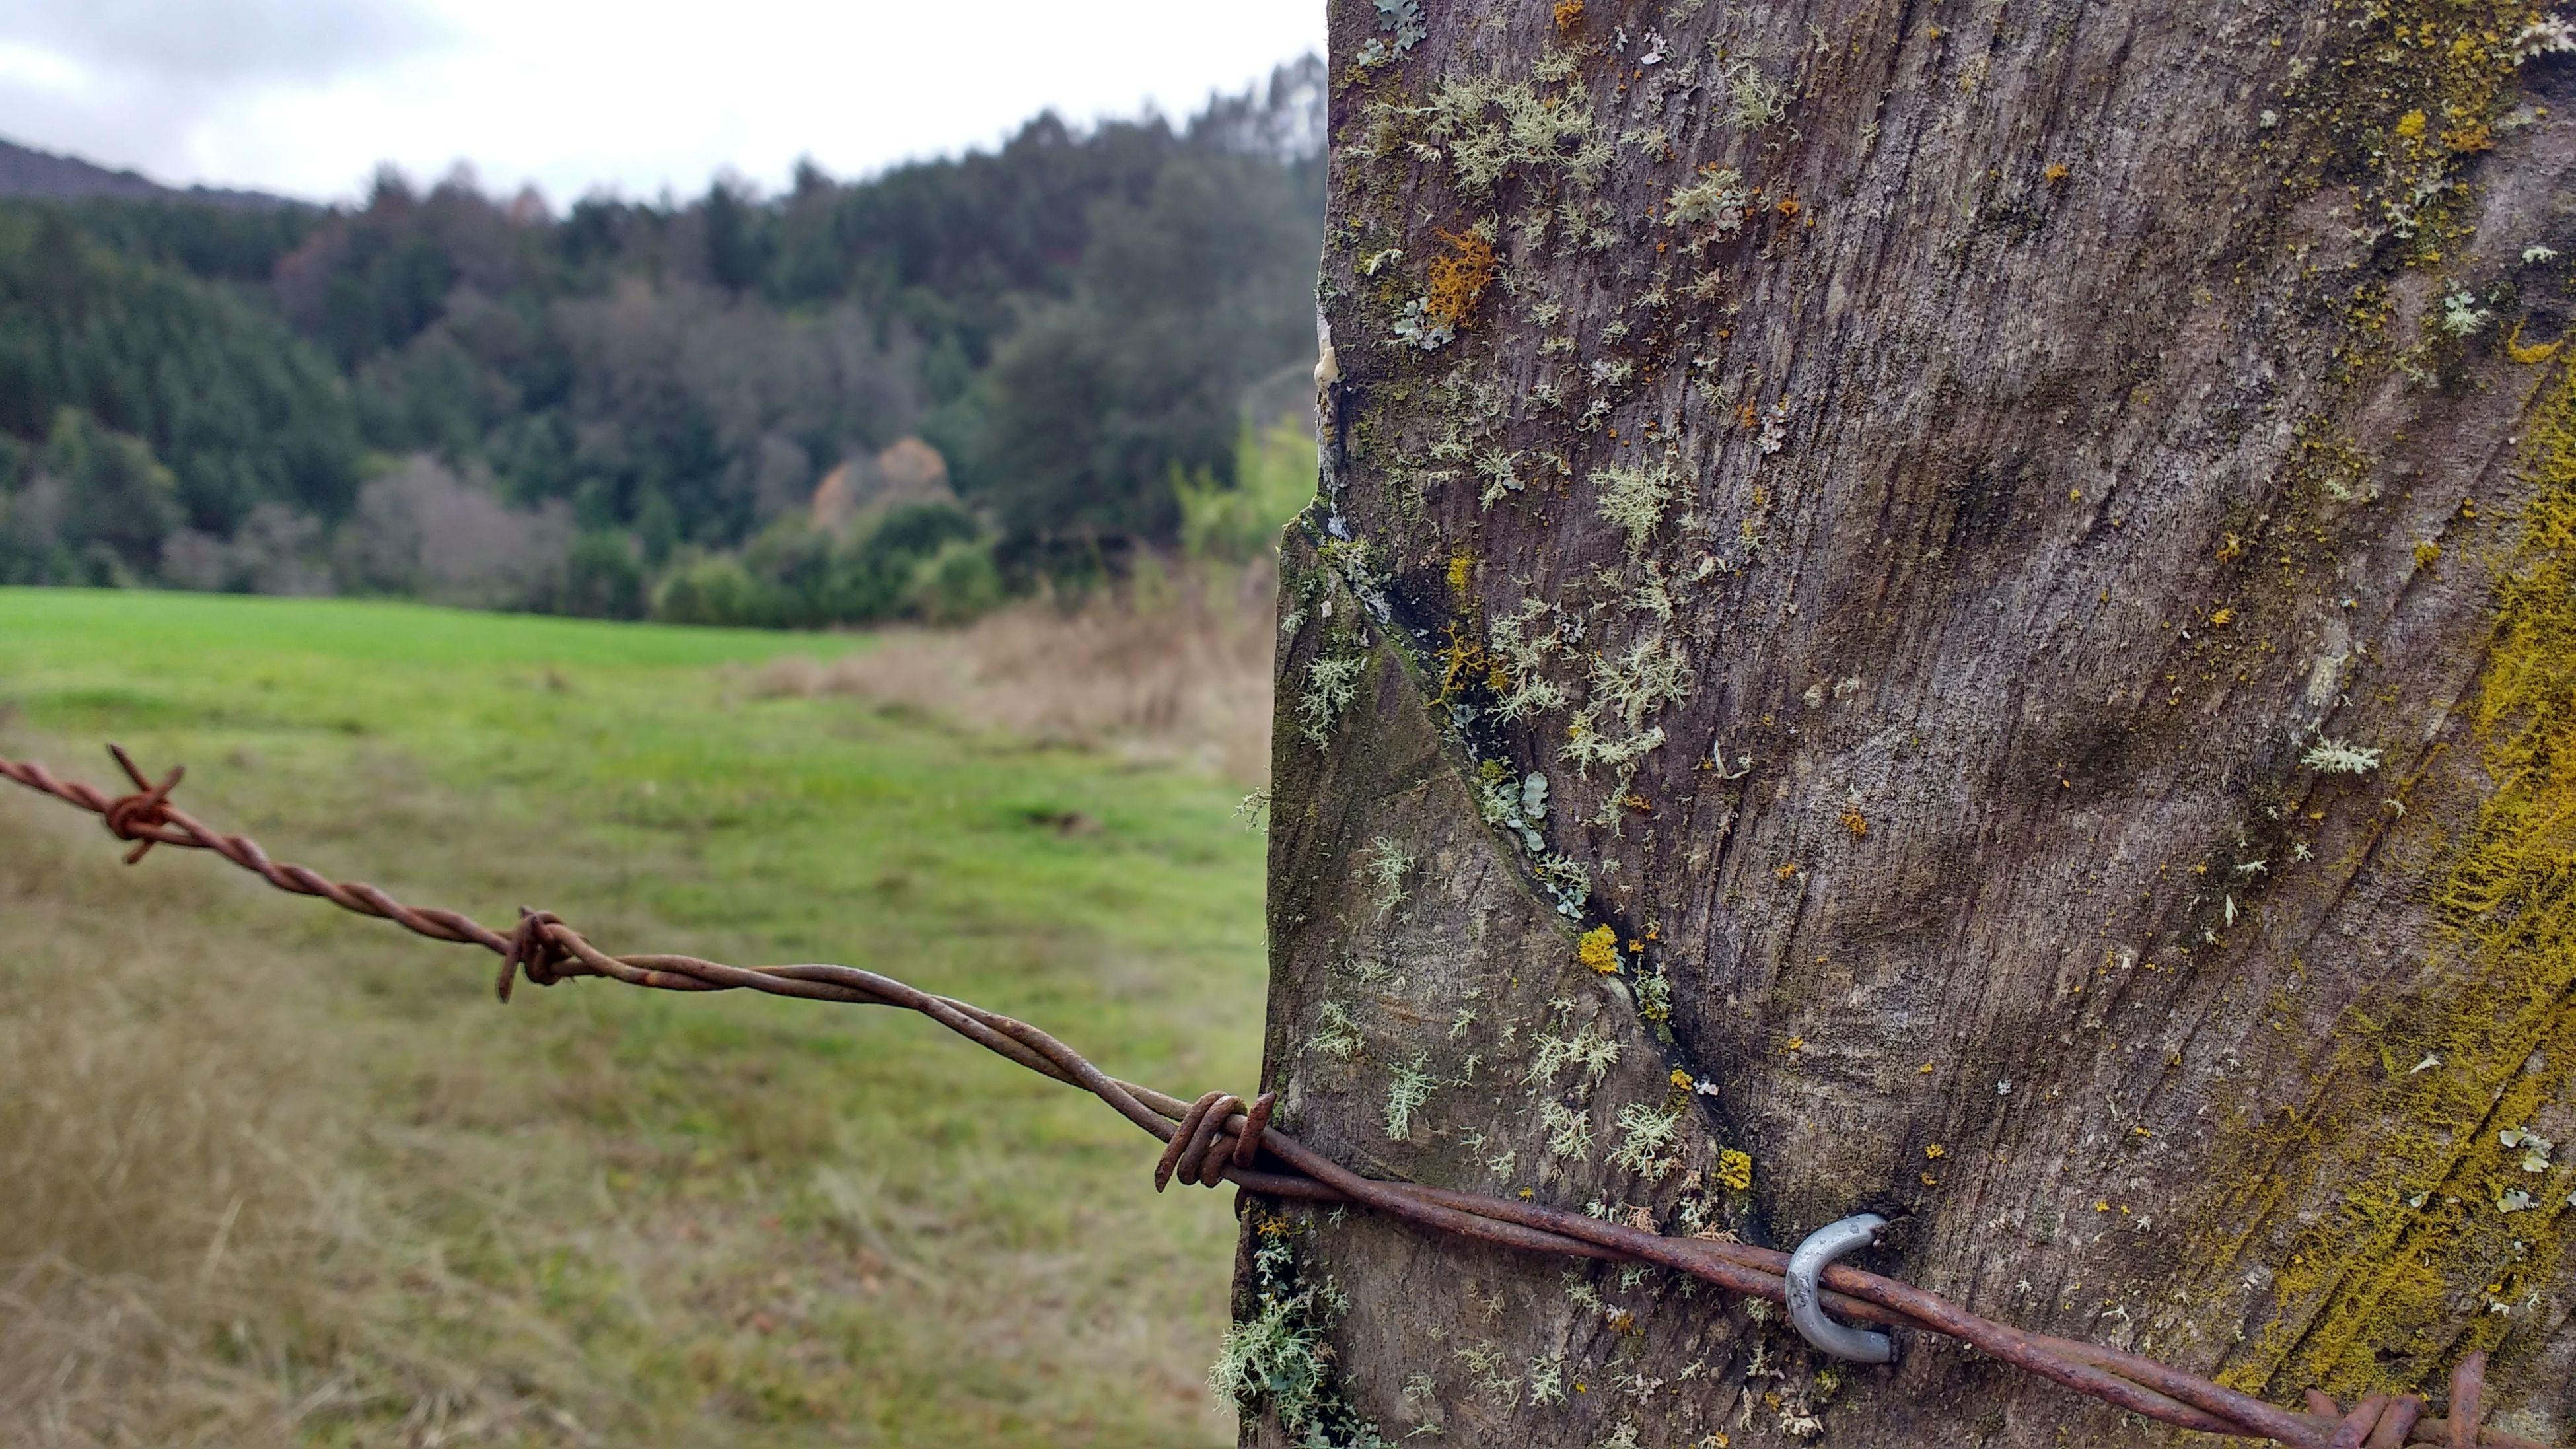 protection, safety, barbed wire, close-up, tree, landscape, fence, focus on foreground, tranquil scene, mountain, non-urban scene, day, tranquility, outdoors, remote, countryside, solitude, sky, extreme close up, no people